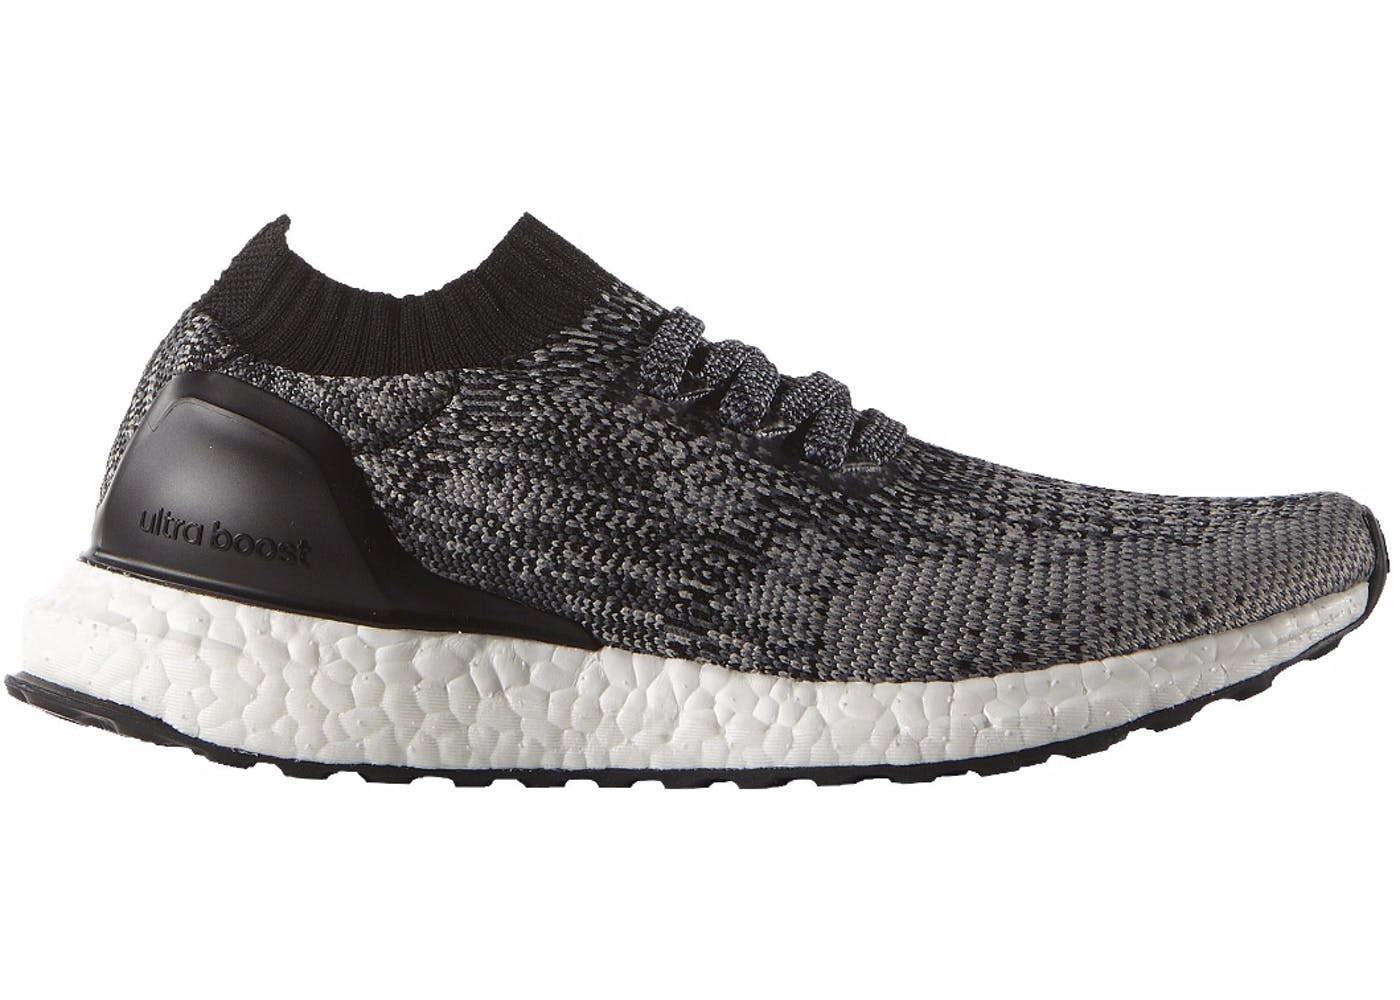 A Chocoloate Colorway Of The adidas Ultra Boost 3.0 Surfaces